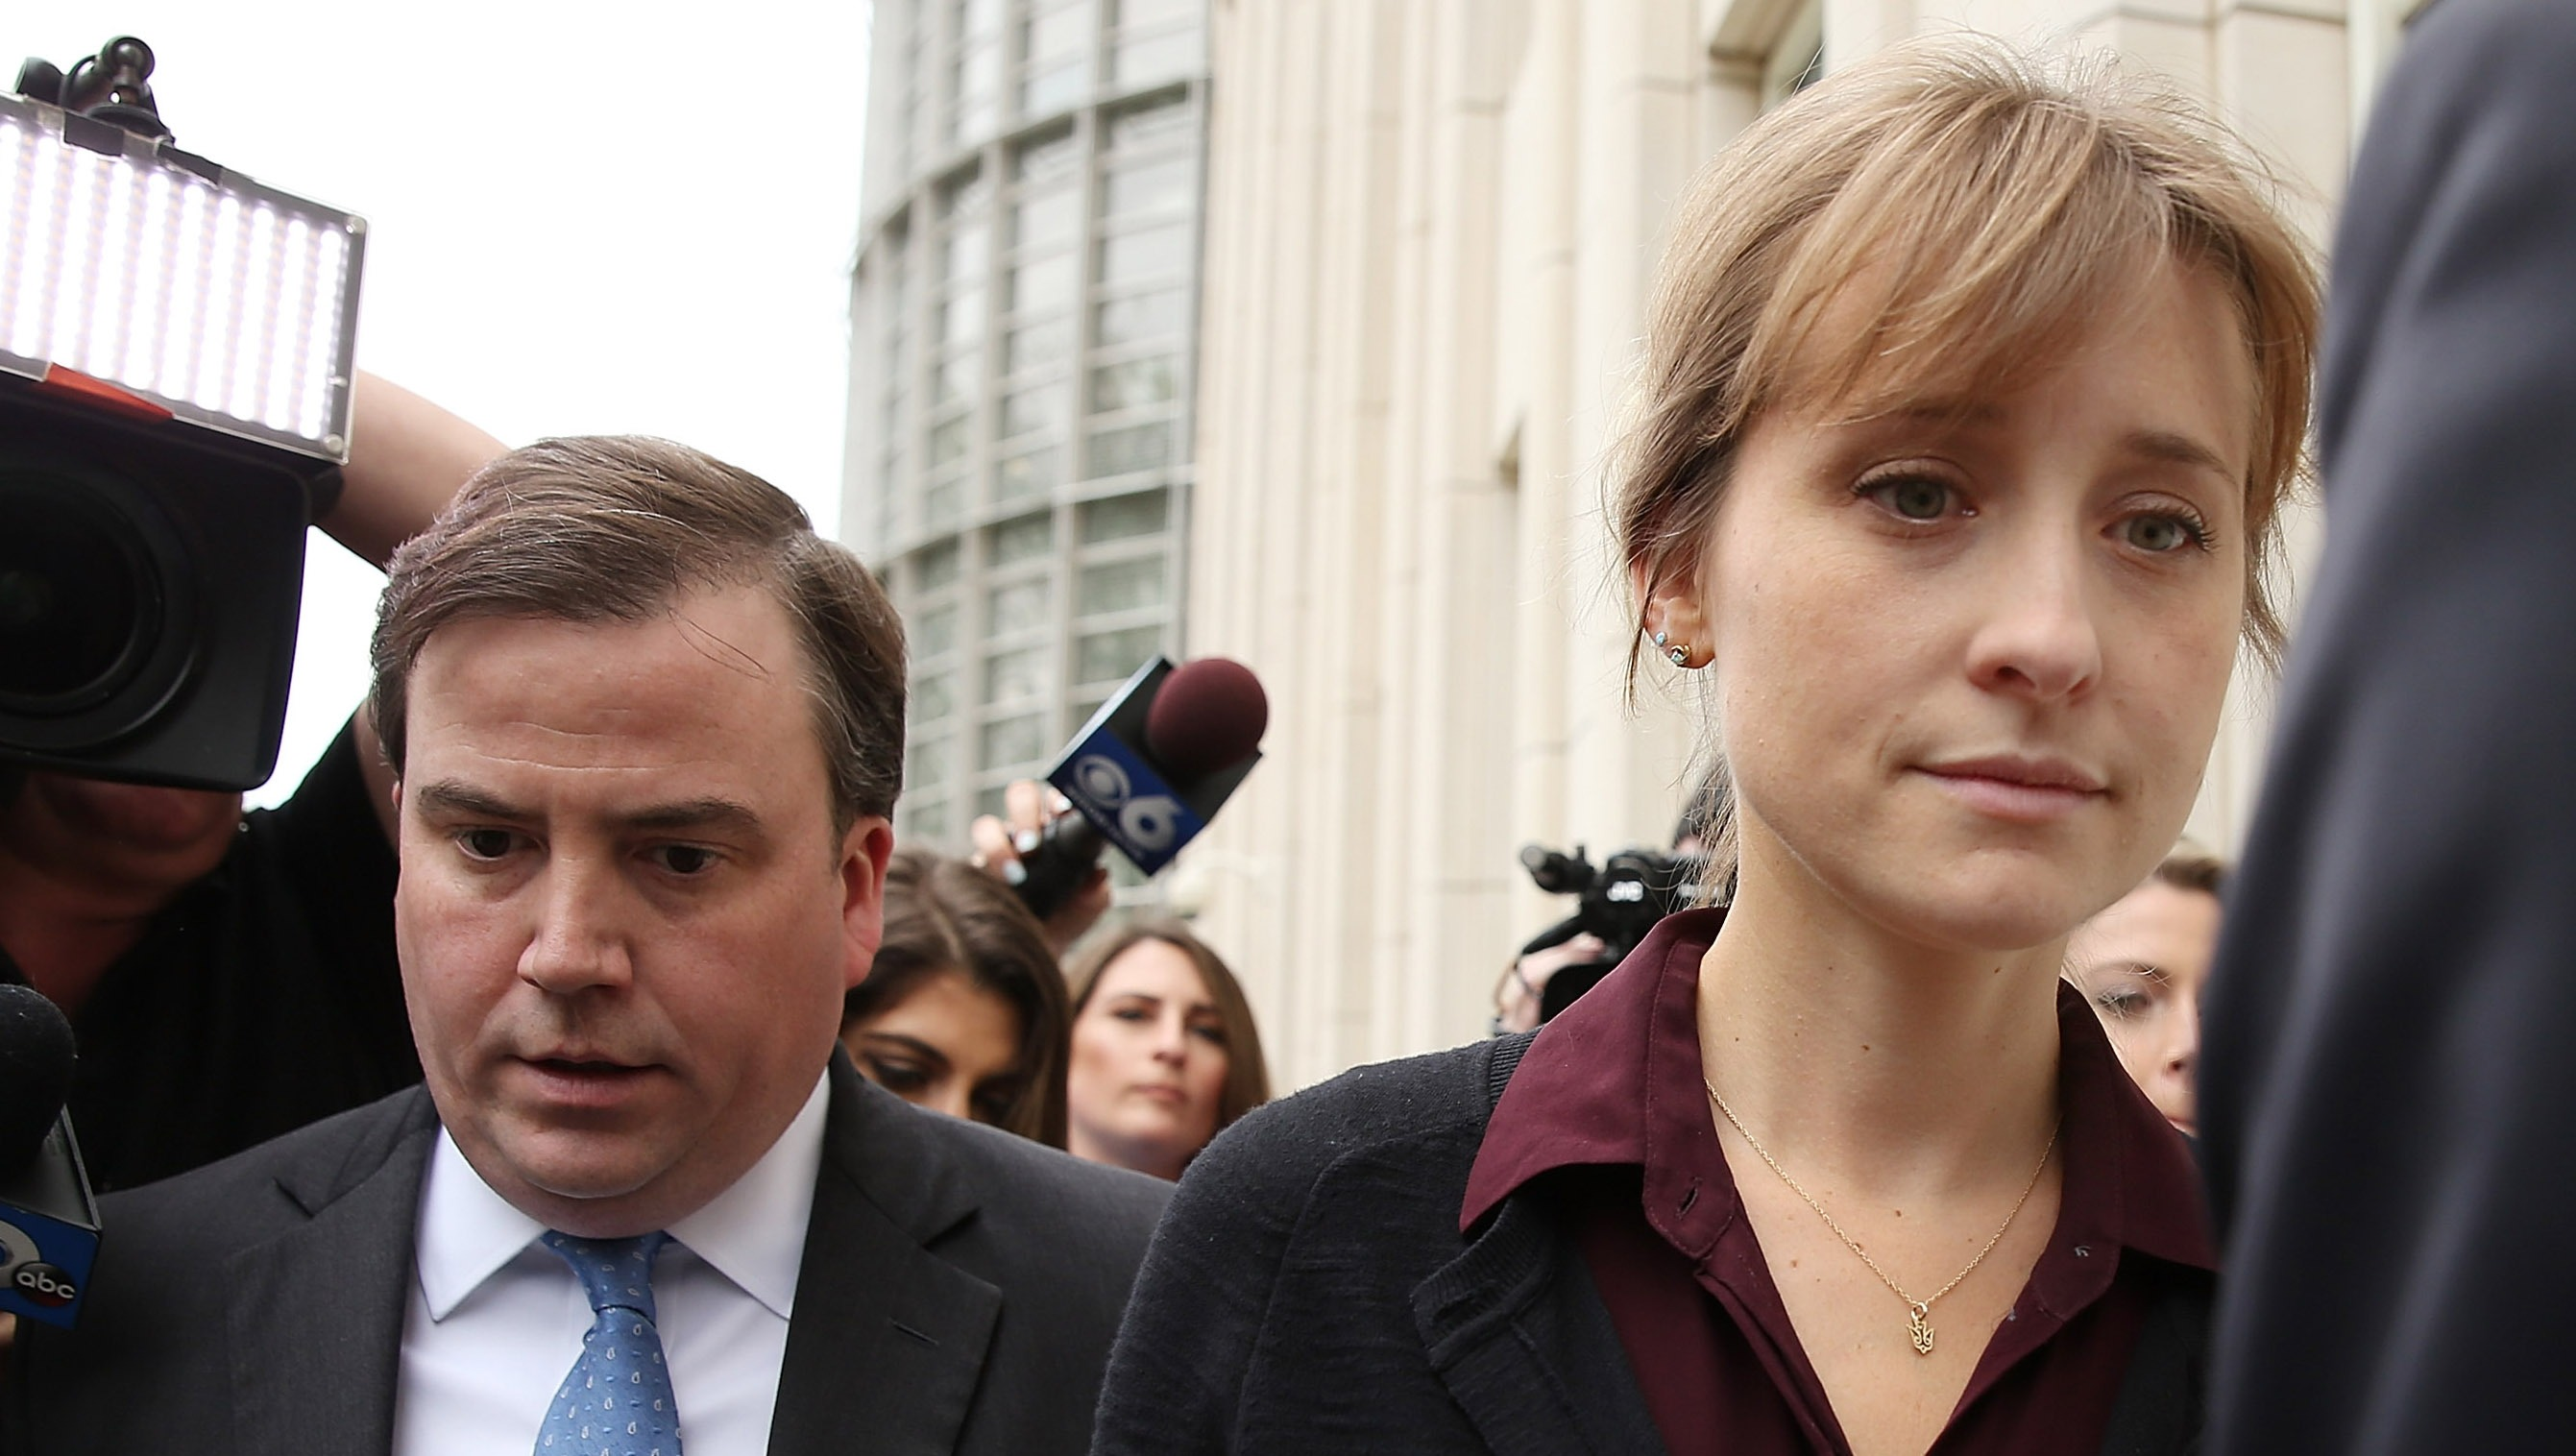 Actress Allison Mack Arrives At Court Over Sex Trafficking Charges